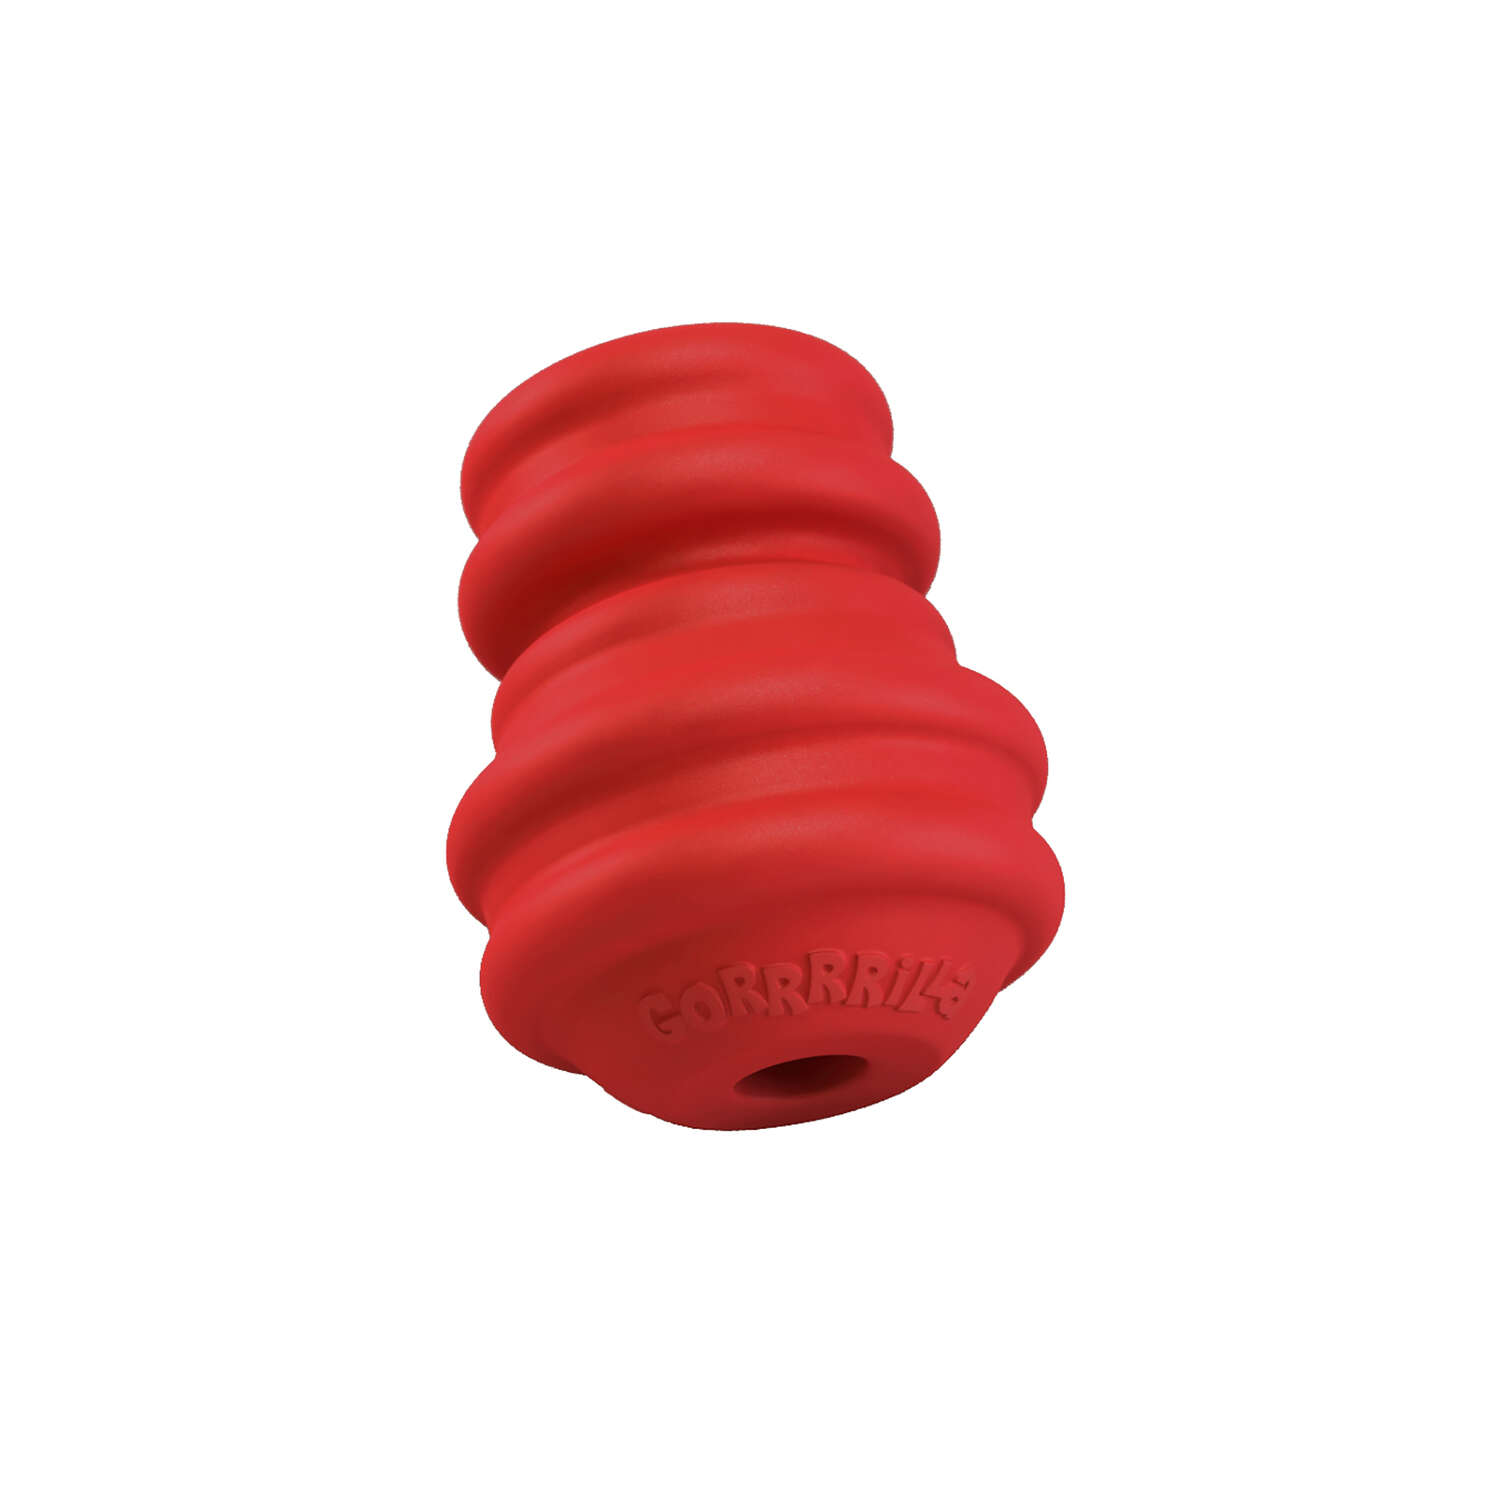 MultiPet  Red  Gorrrilla  Chew Dog Toy  Rubber  Small